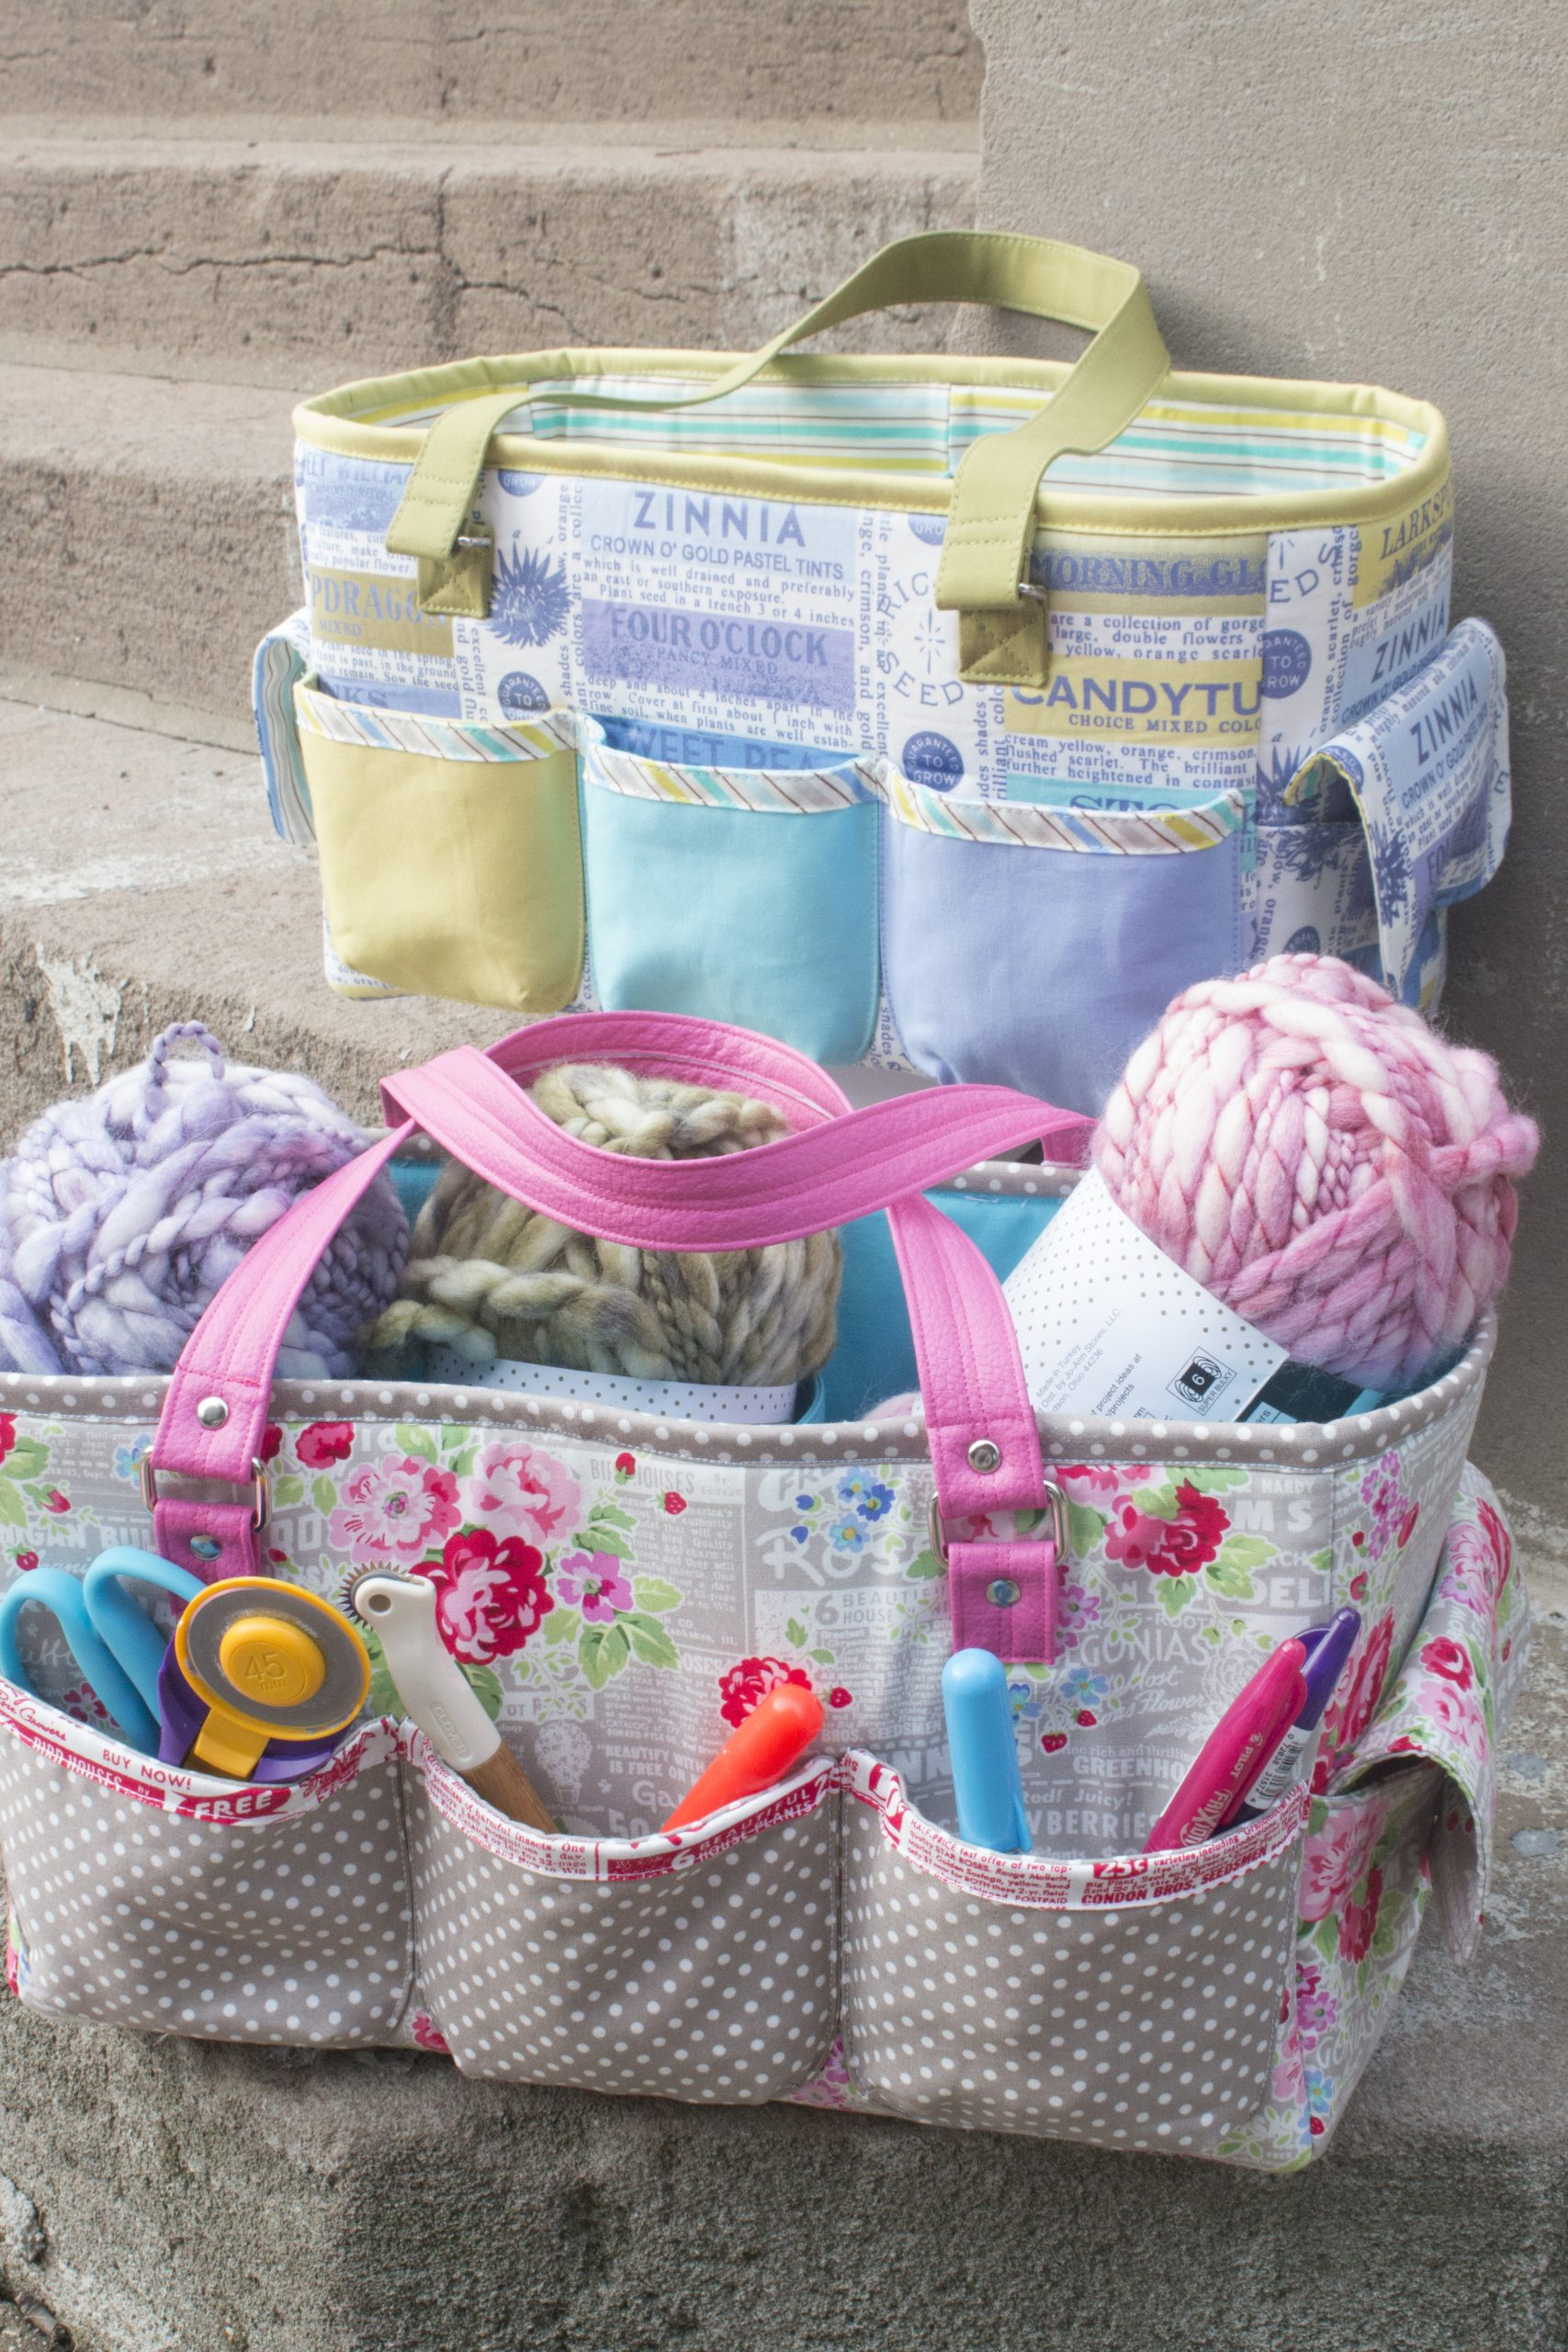 Sewsweetness-Free-Patterns-Organisation-ideas-for-Your-Sewing-Space